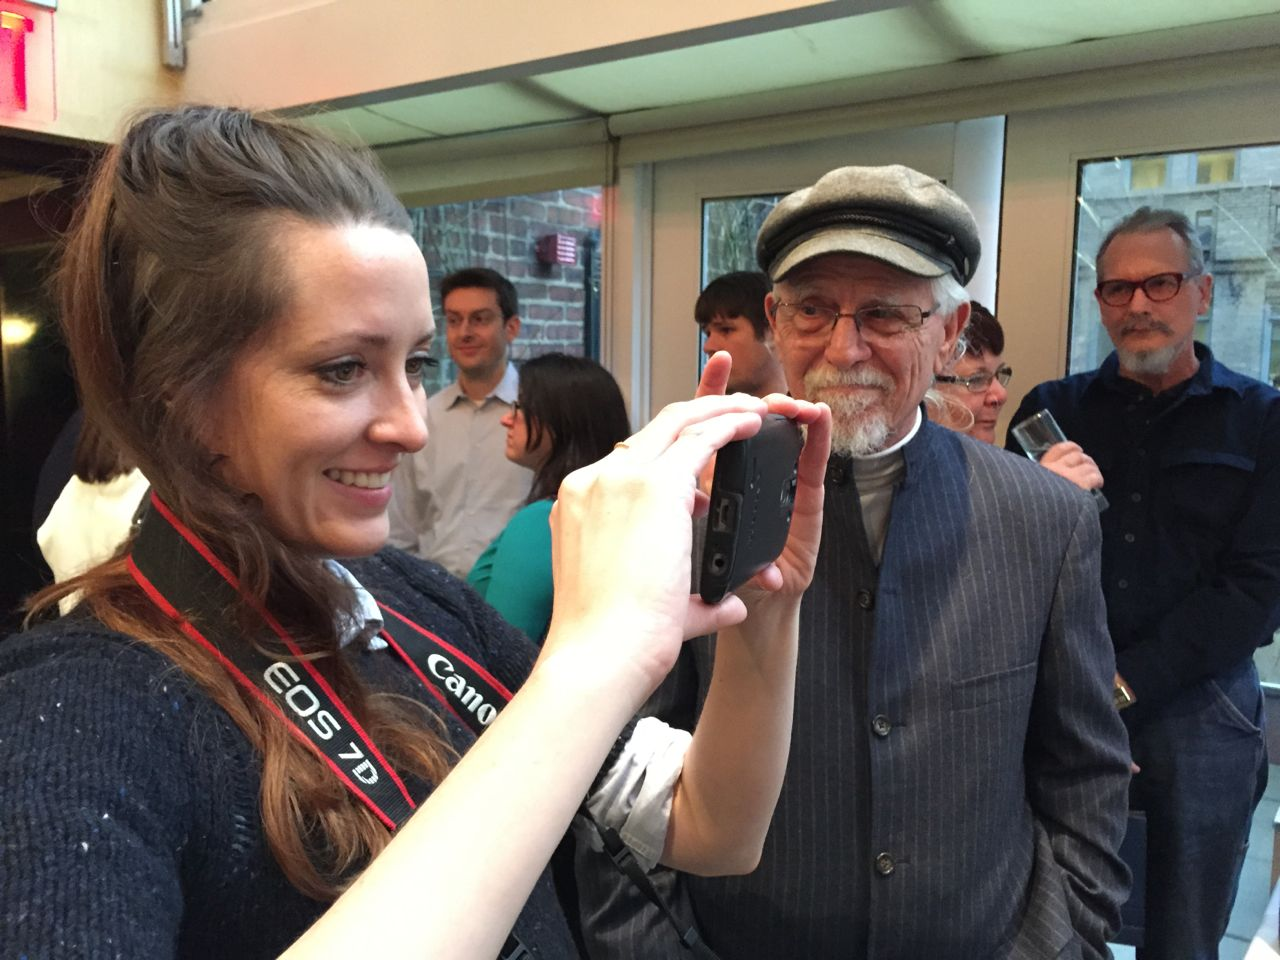 Charli James (@Charli), a video producer/journalist taking a picture of her parents with her grandfather looking on.